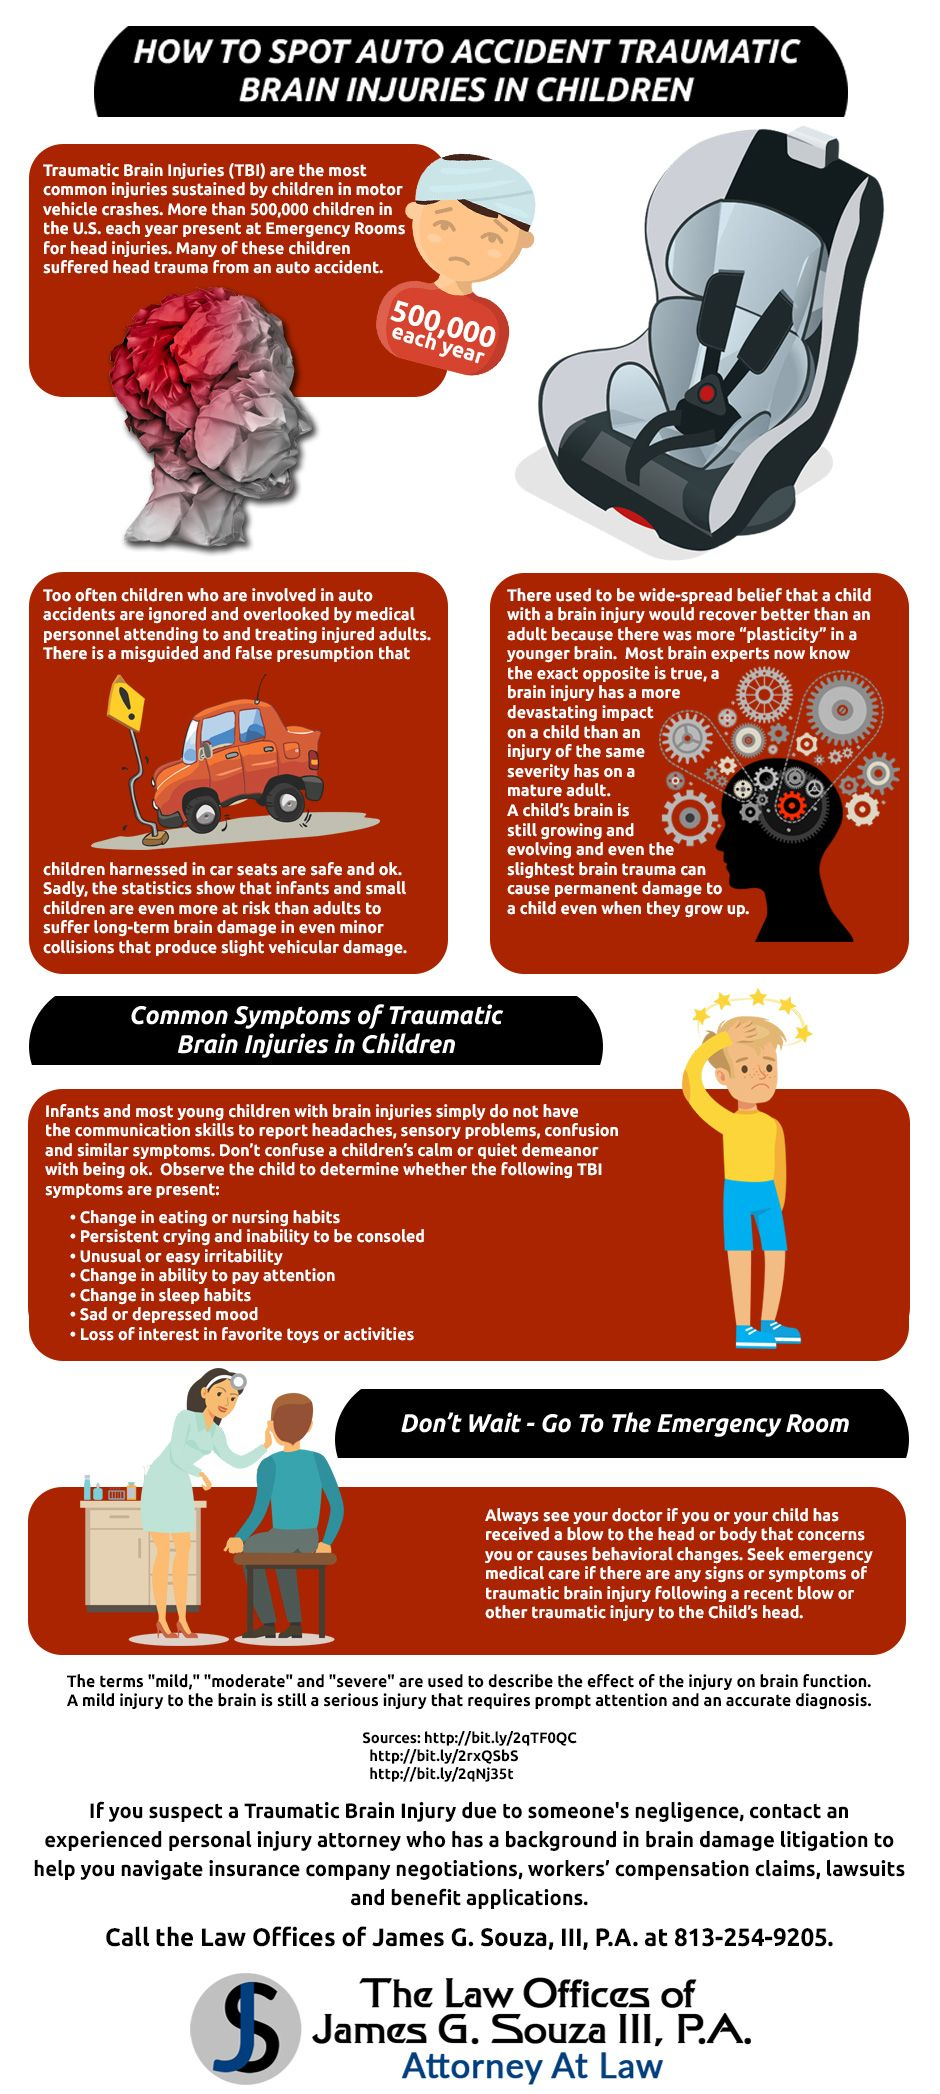 How to Spot Auto Accident Traumatic Brain Injuries in